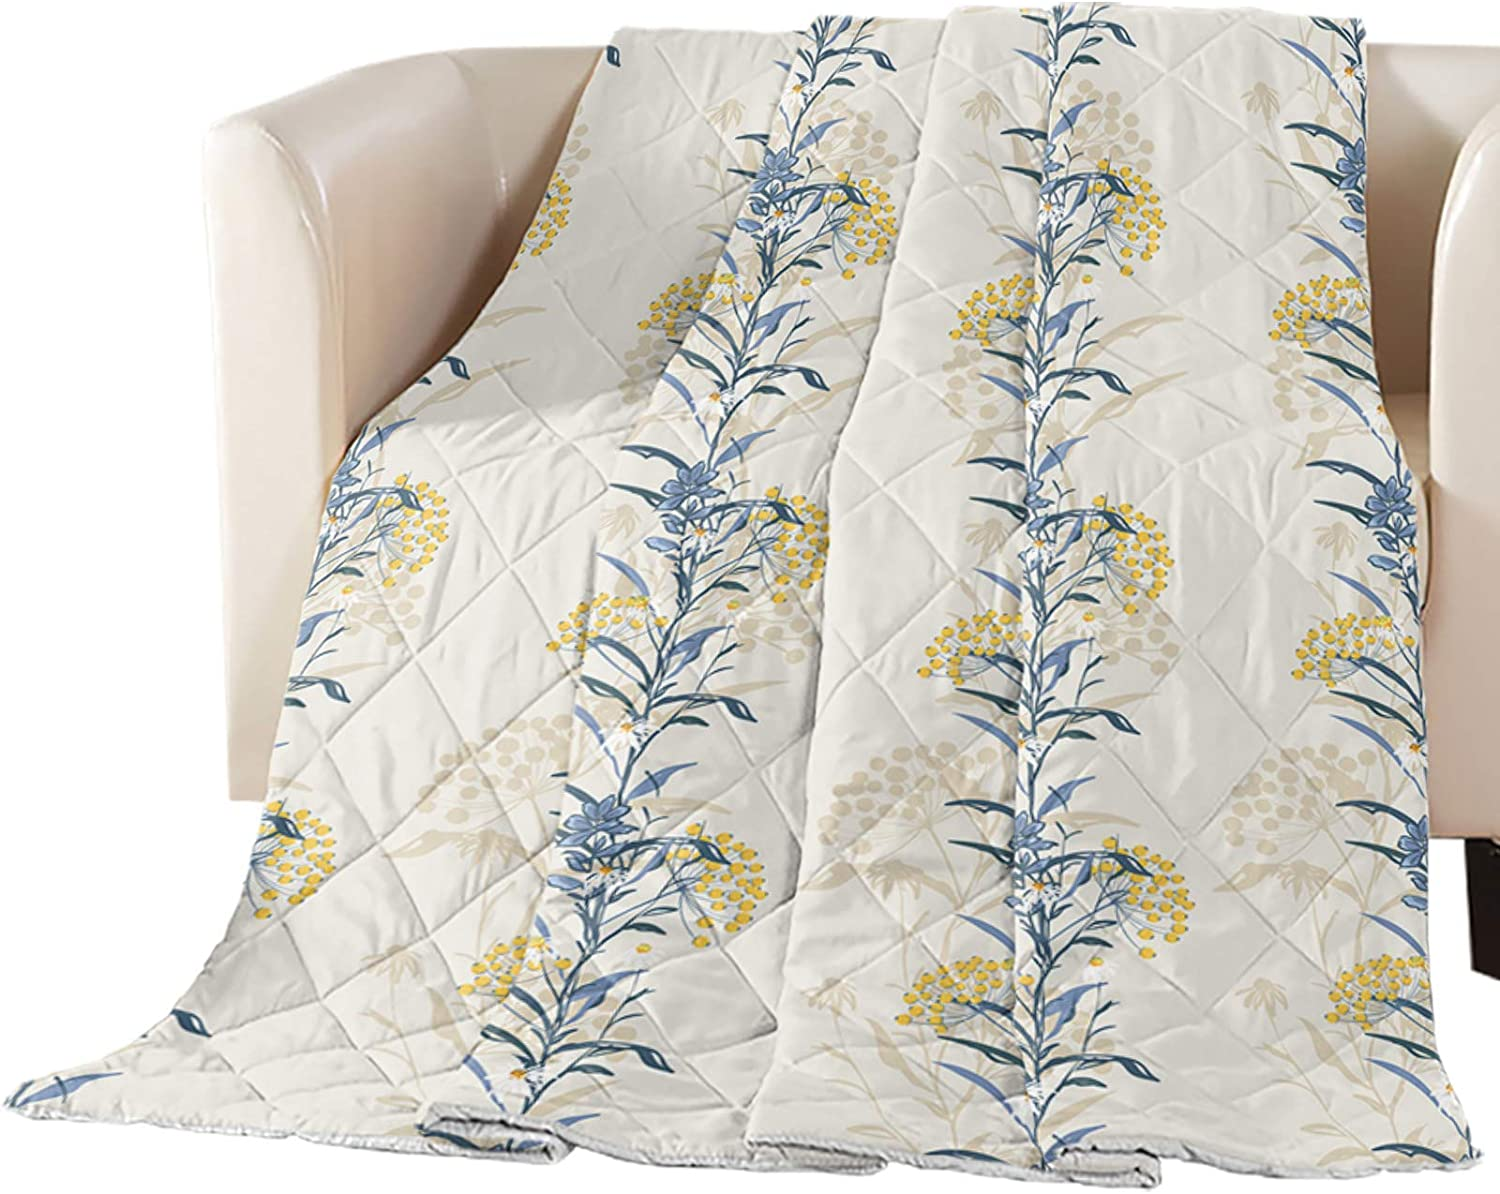 Arts Print Full Size Quilt Ranking Max 84% OFF TOP5 Lightweight Bedspread All Throw Soft